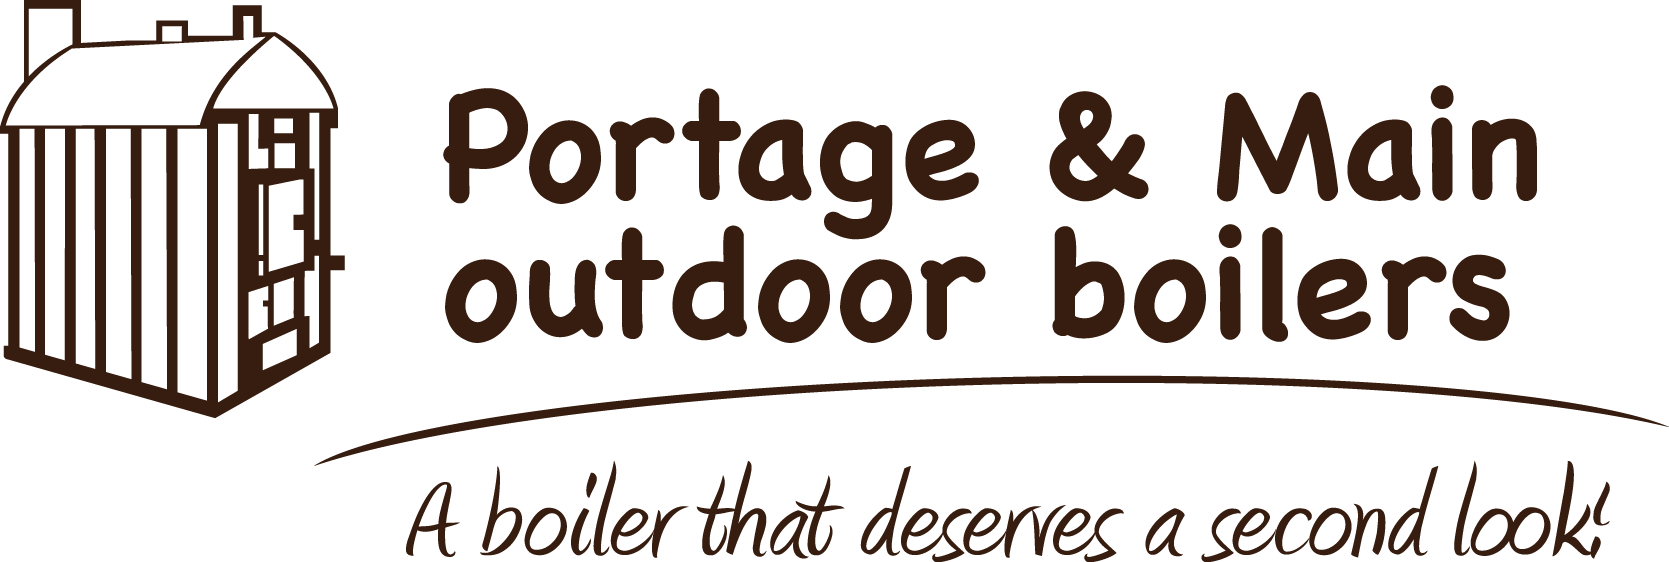 Portage and Main Outdoor Boilers logo